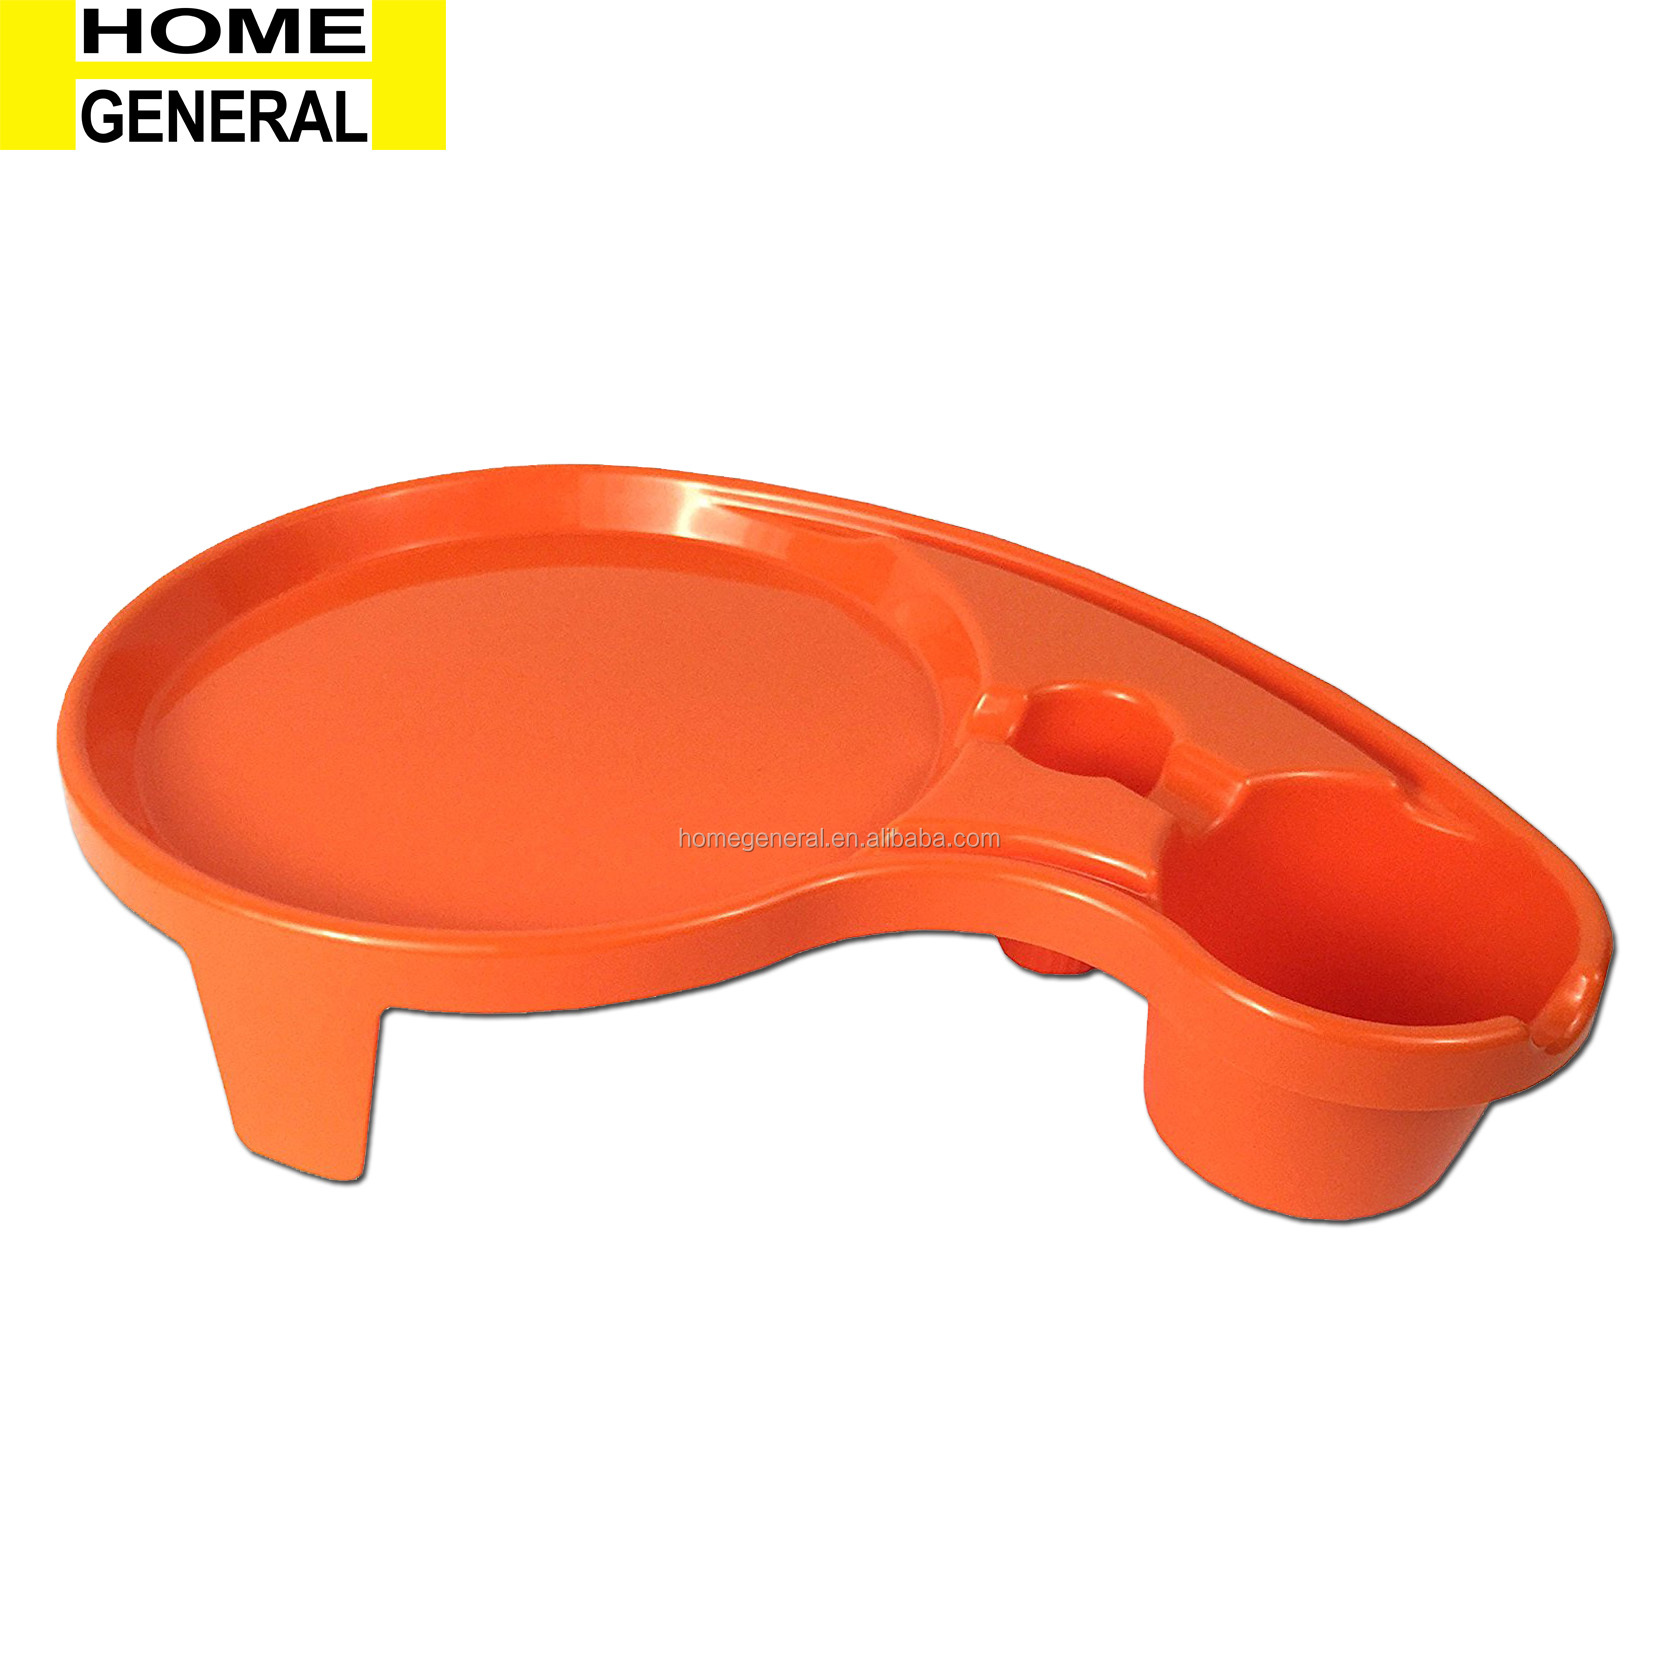 PARTY GENERAL PLASTIC PARTY TRAY BREAKFAST EATING KIDS SNACK TRAY STANDING FOOD TRAY PLASTIC FOOD TRAY